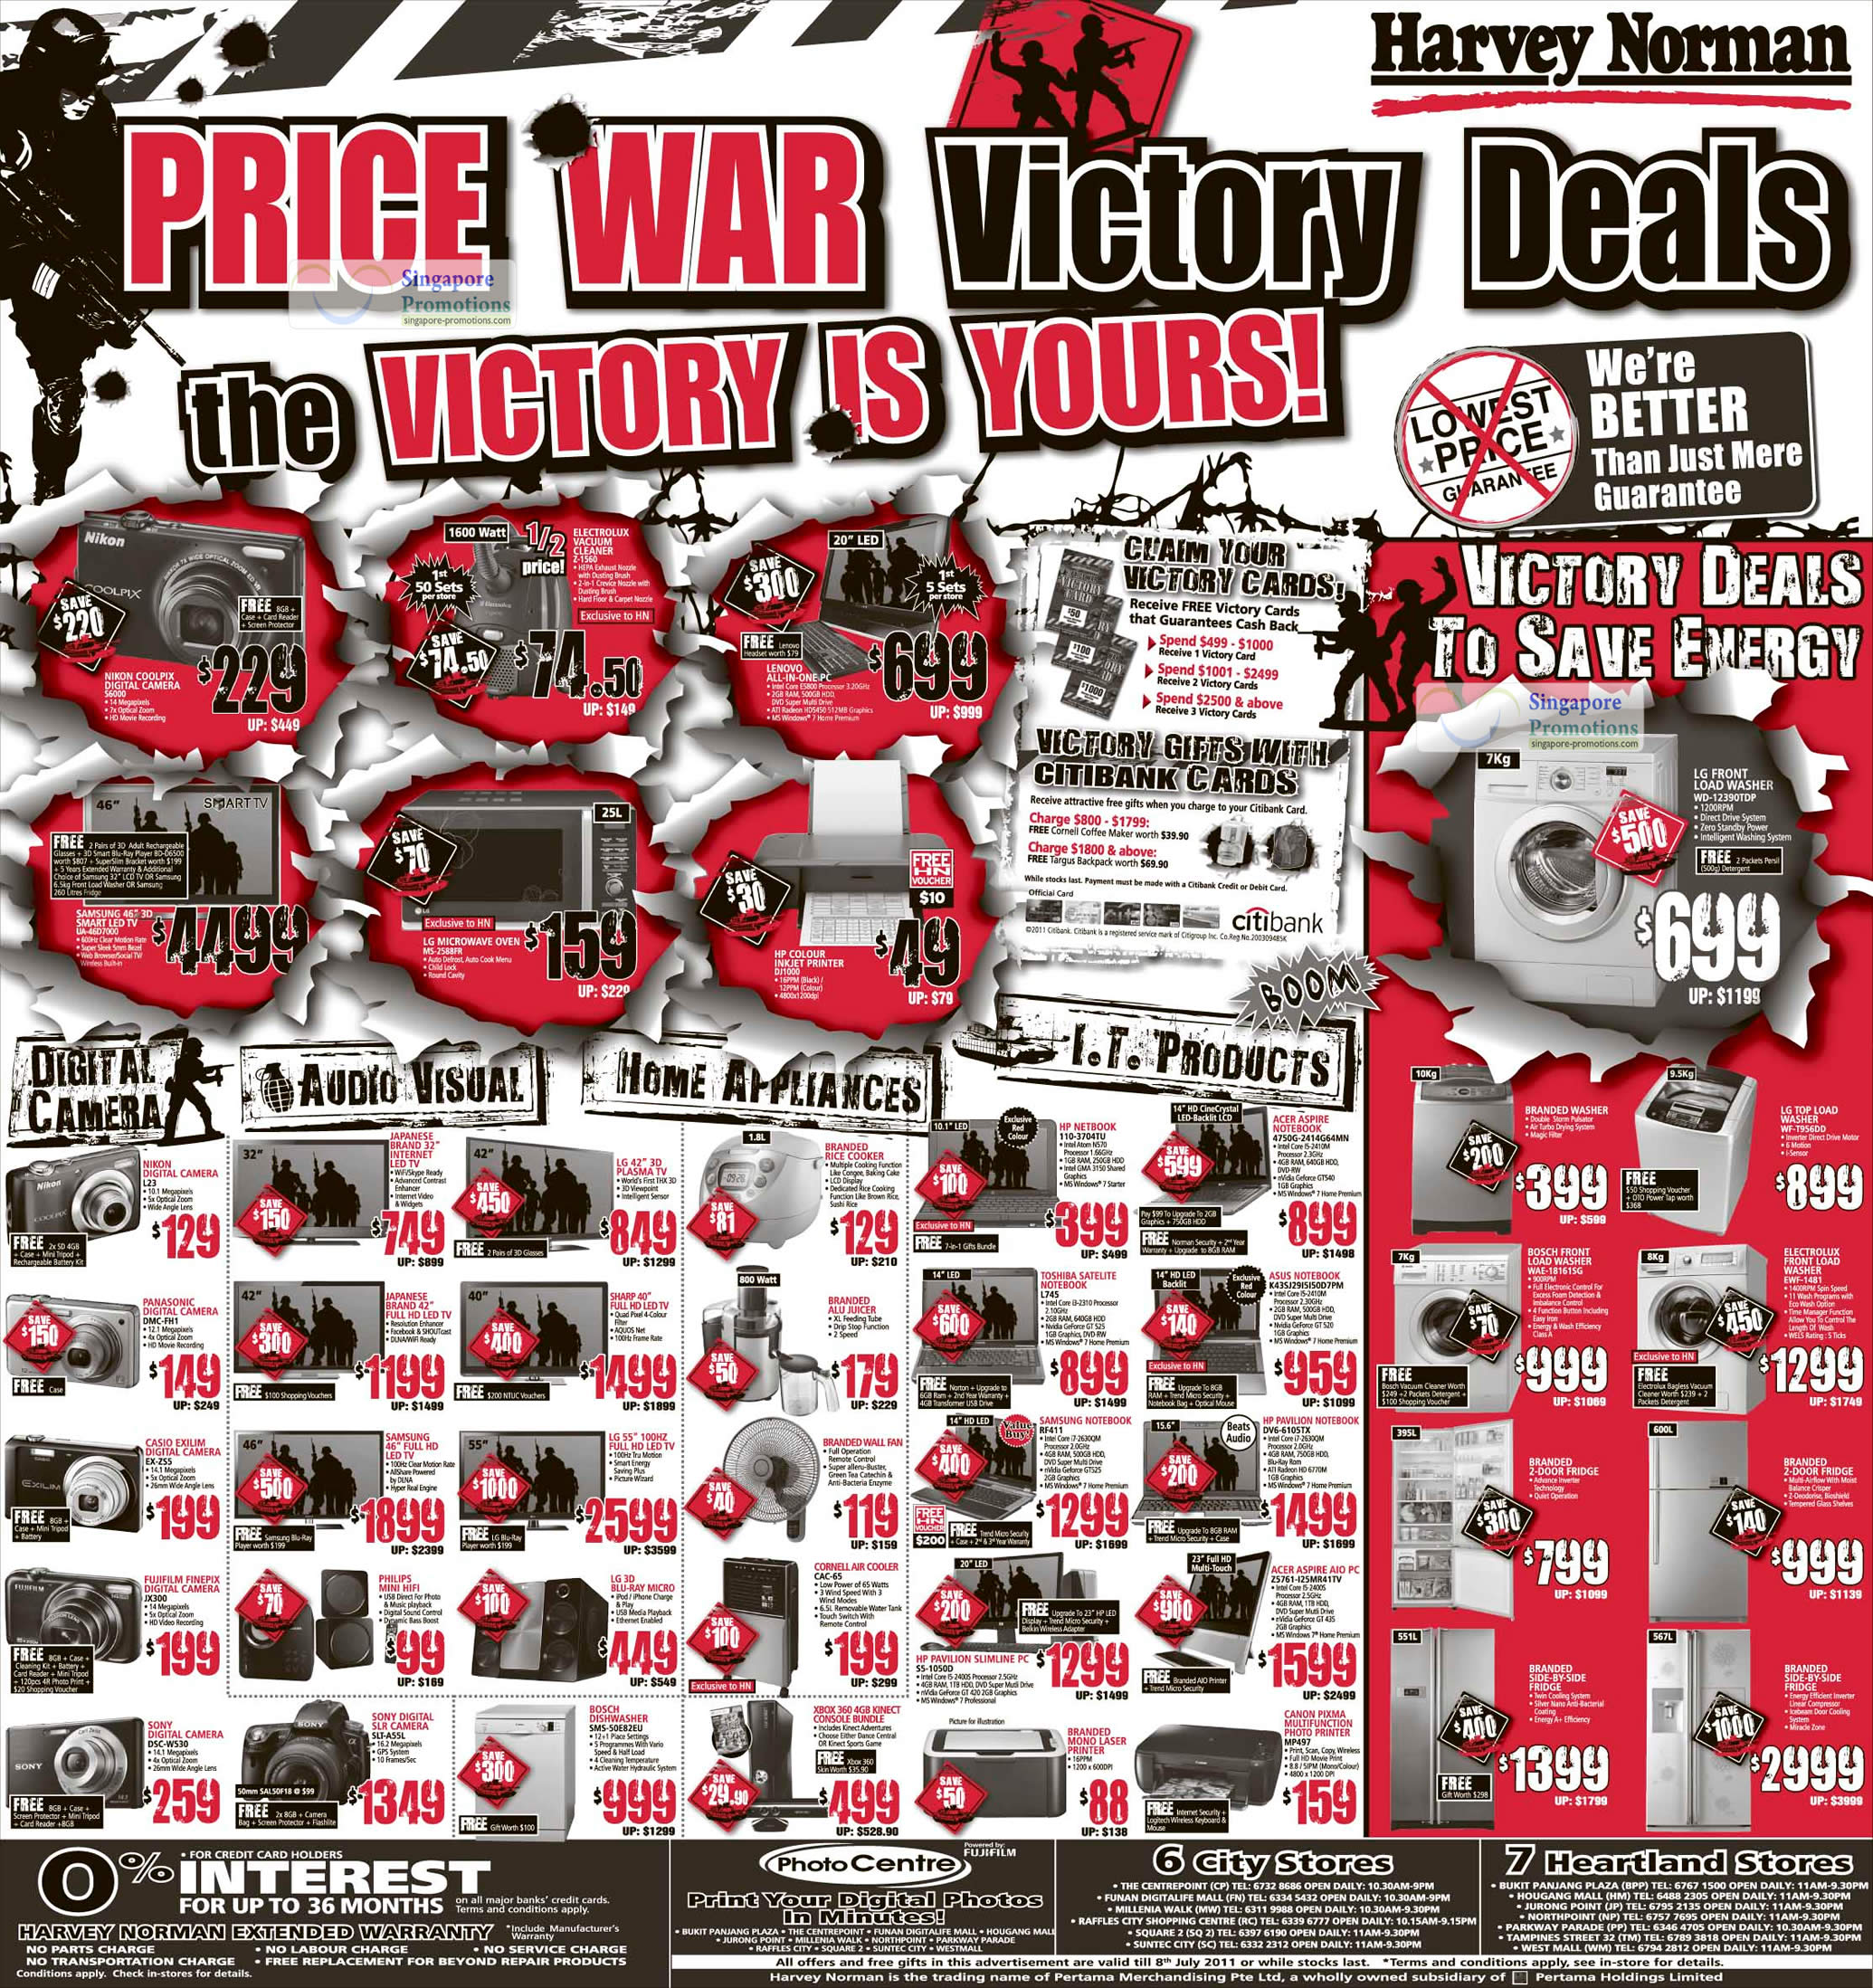 Harvey Norman Electronics, Home Appliances, IT Products, Digital Cameras & Furniture Special Offers 2 - 8 Jul 2011